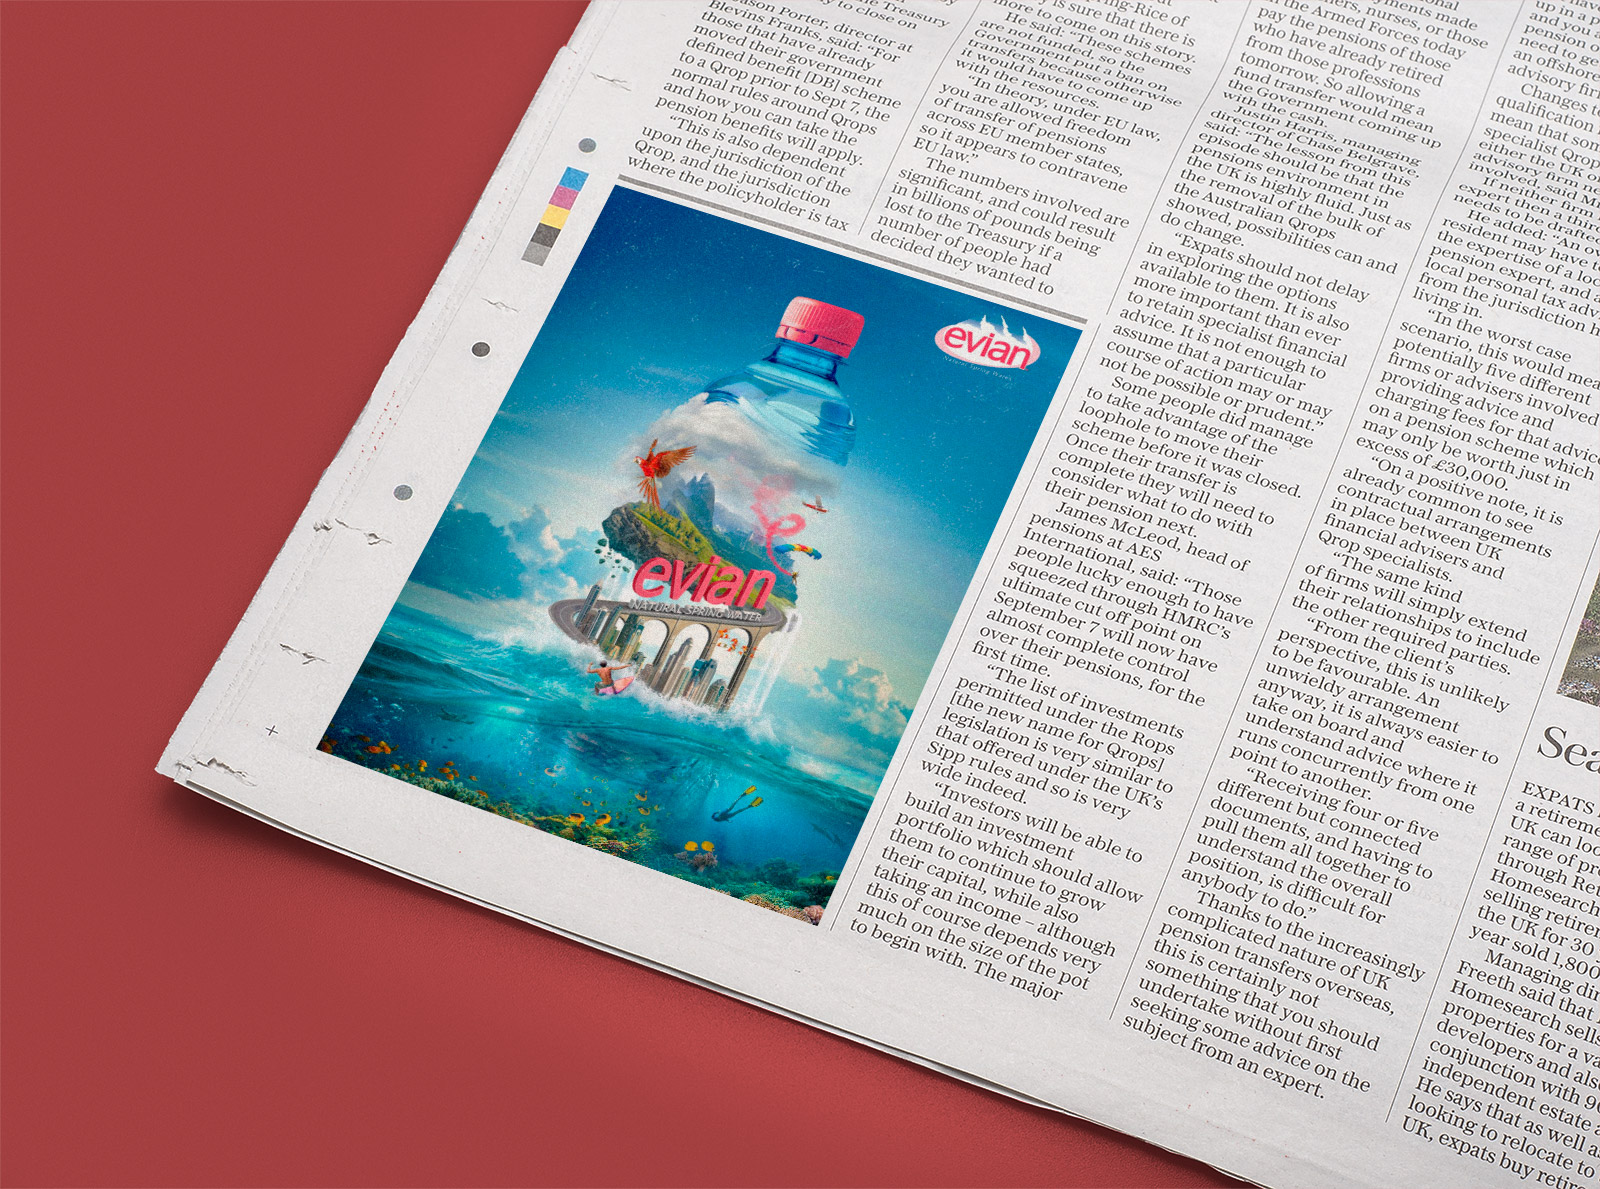 Free-Vertical-Newspaper-Adverts-Mockup-PSD-3